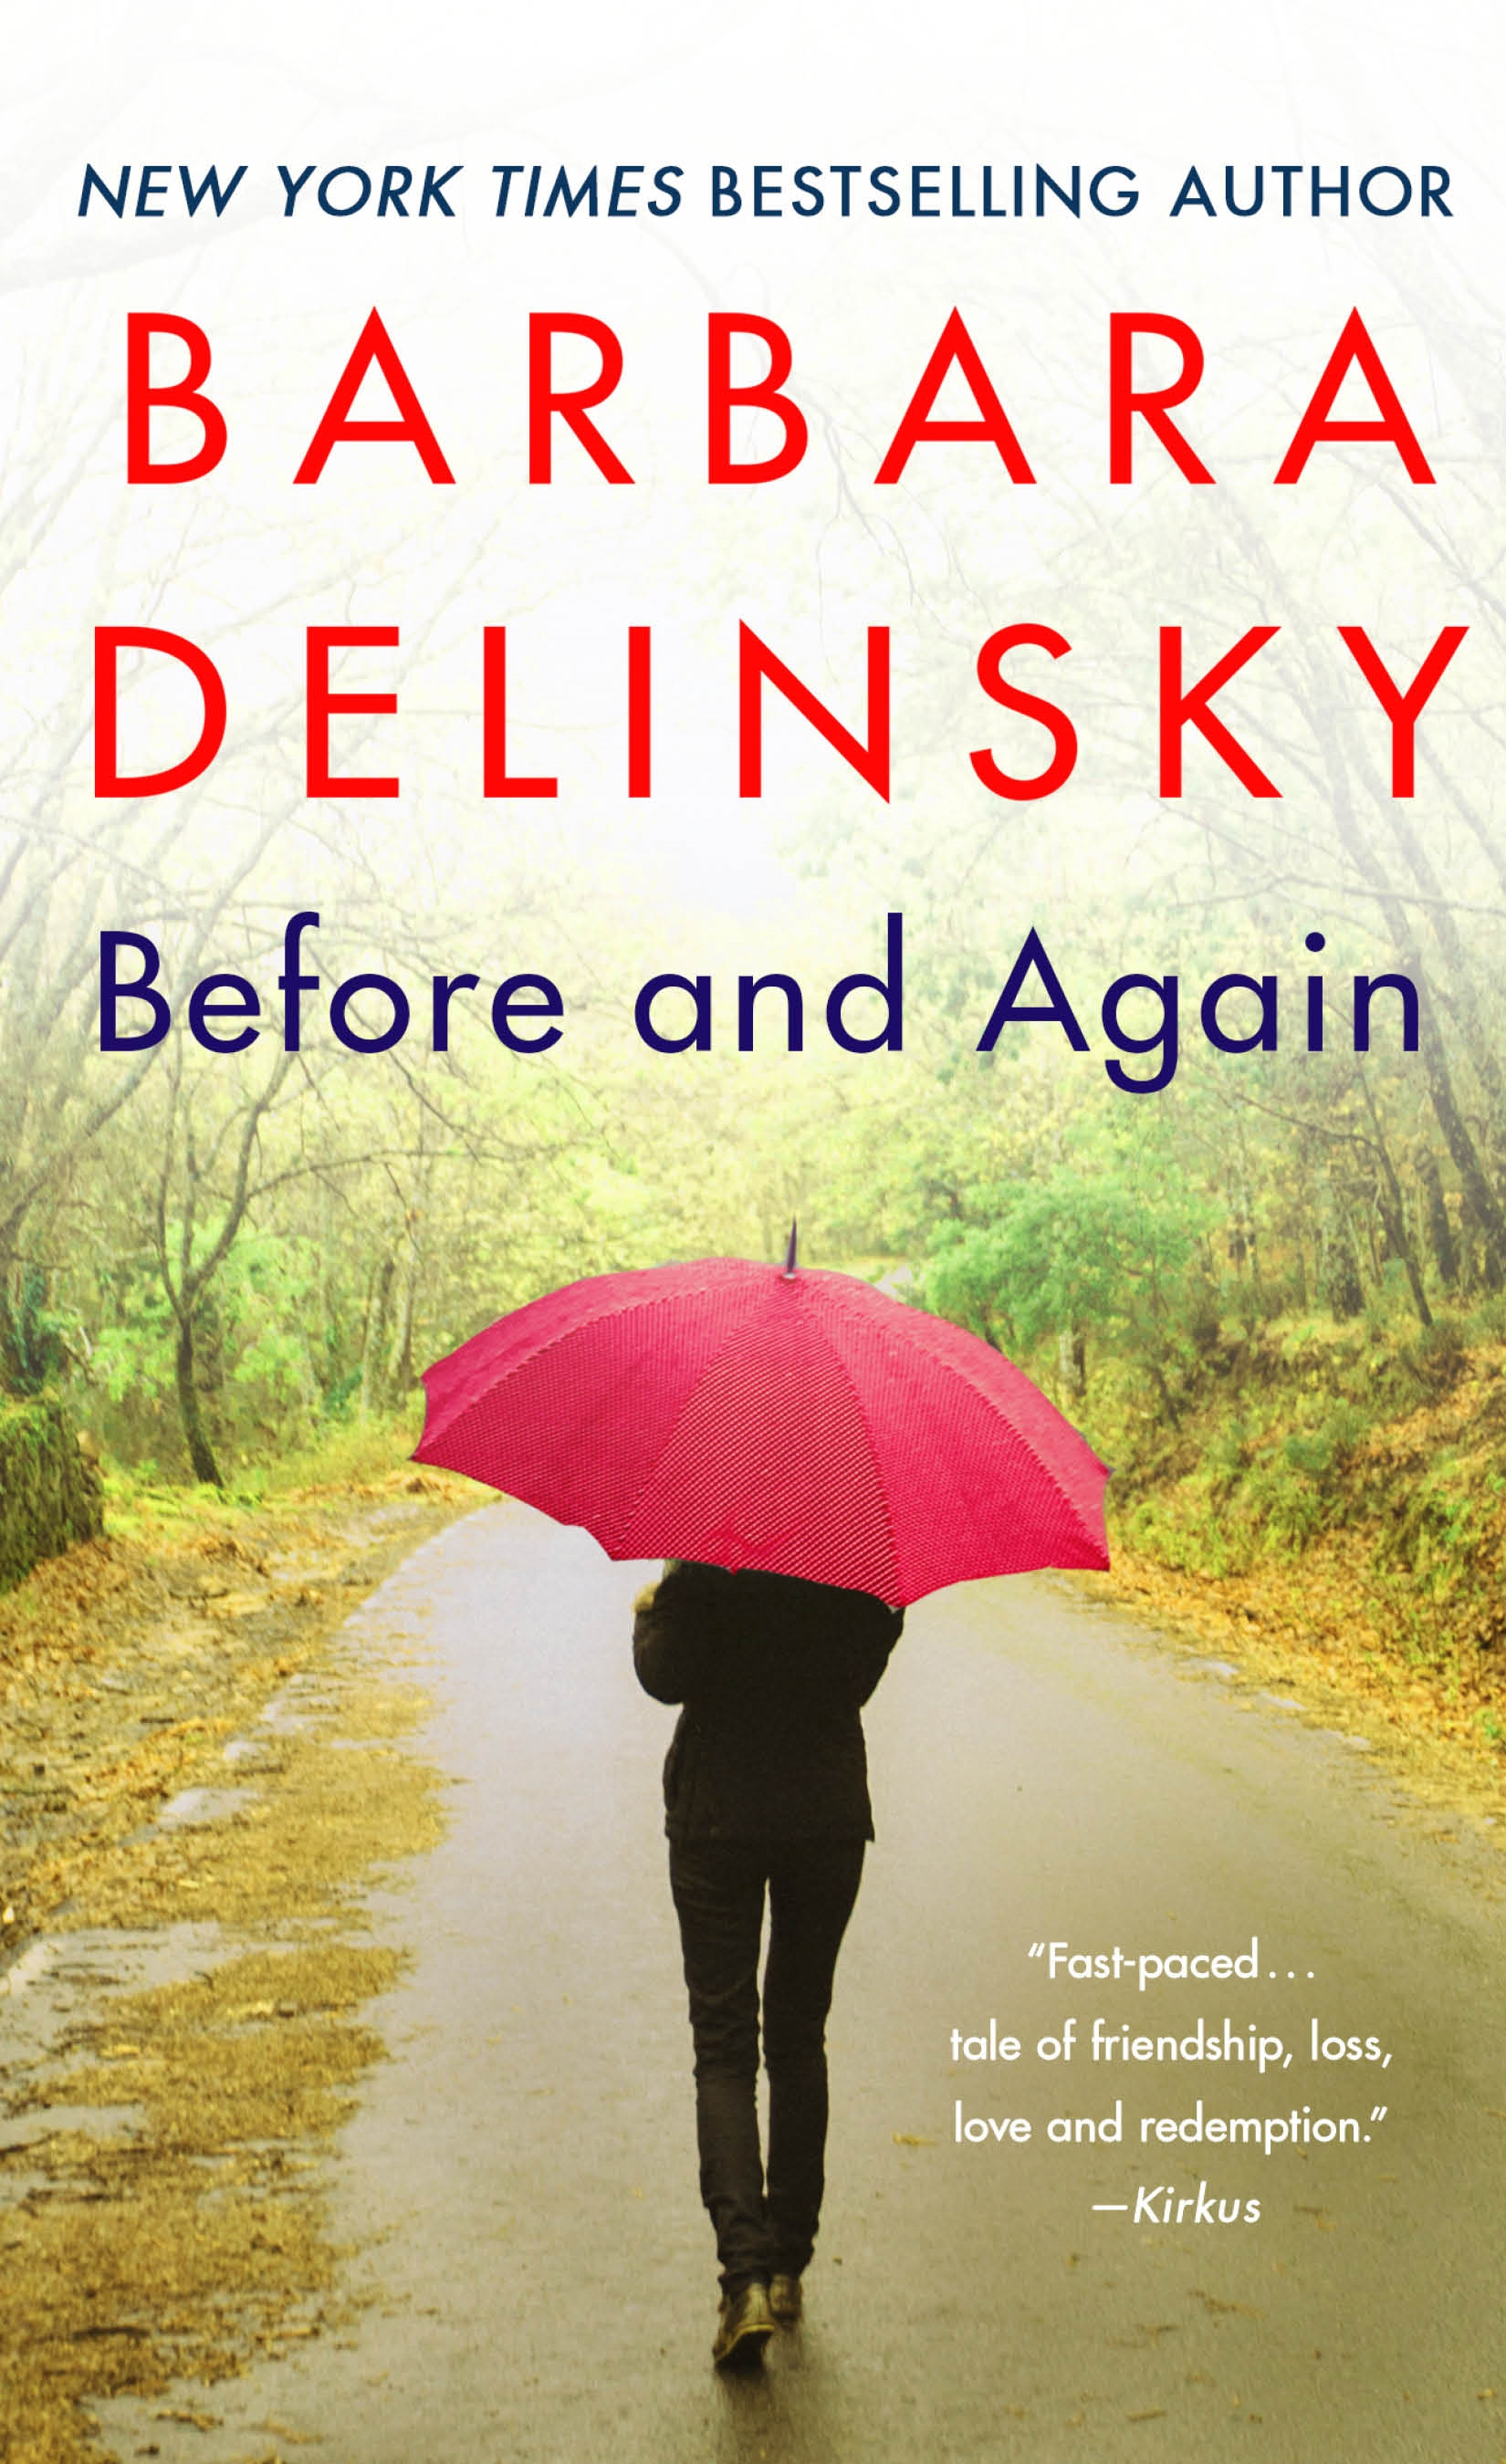 Before and again cover image